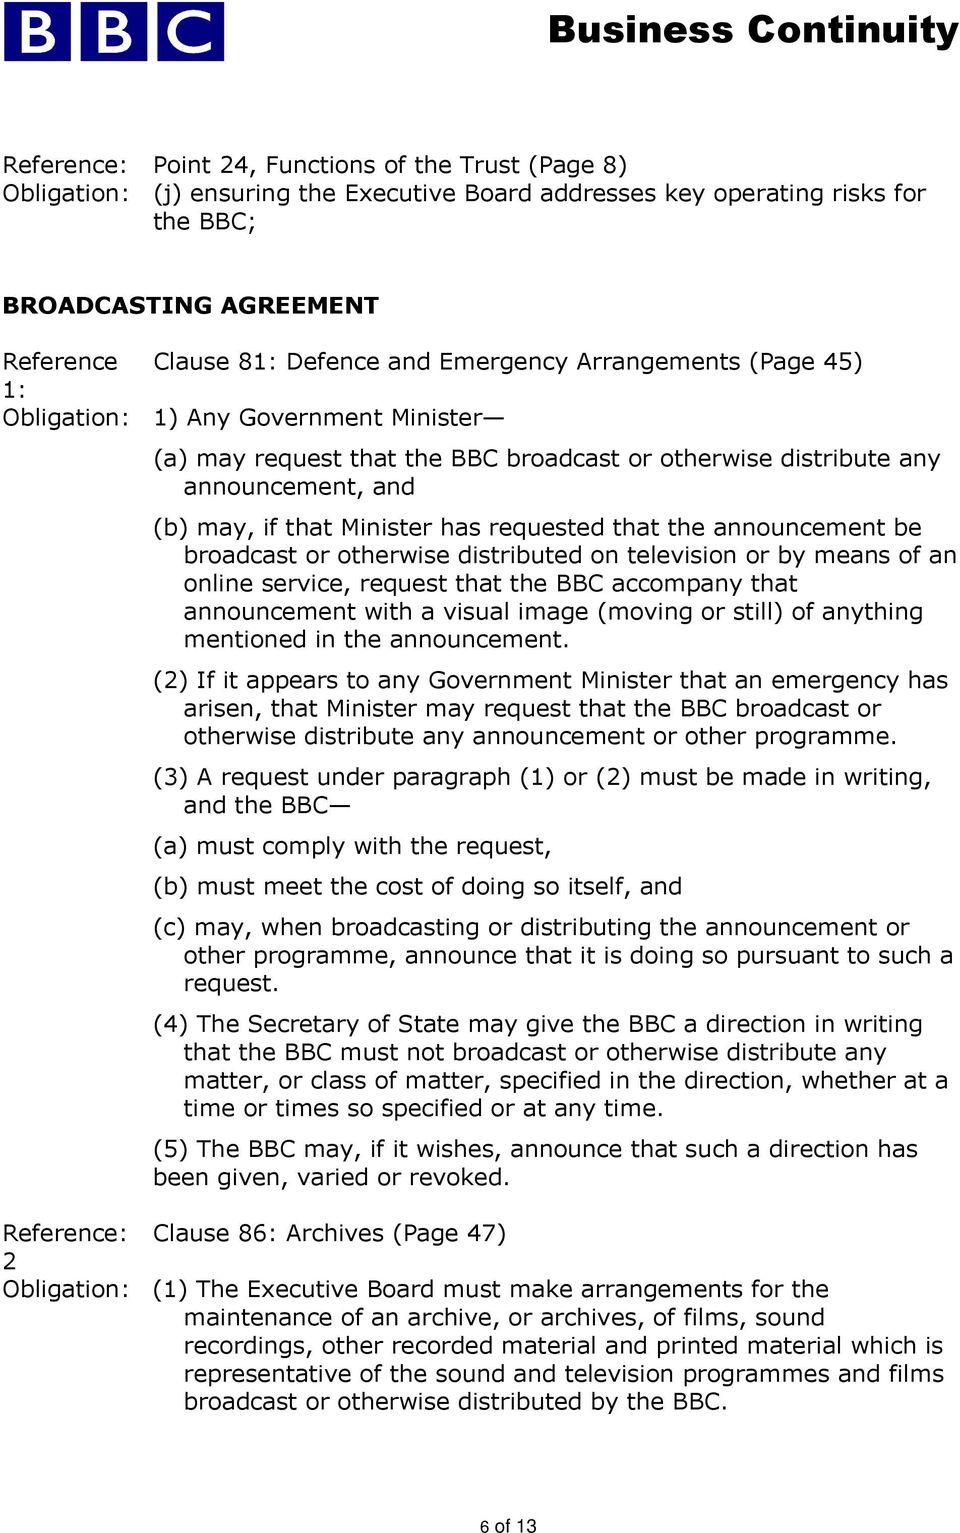 that the announcement be broadcast or otherwise distributed on television or by means of an online service, request that the BBC accompany that announcement with a visual image (moving or still) of